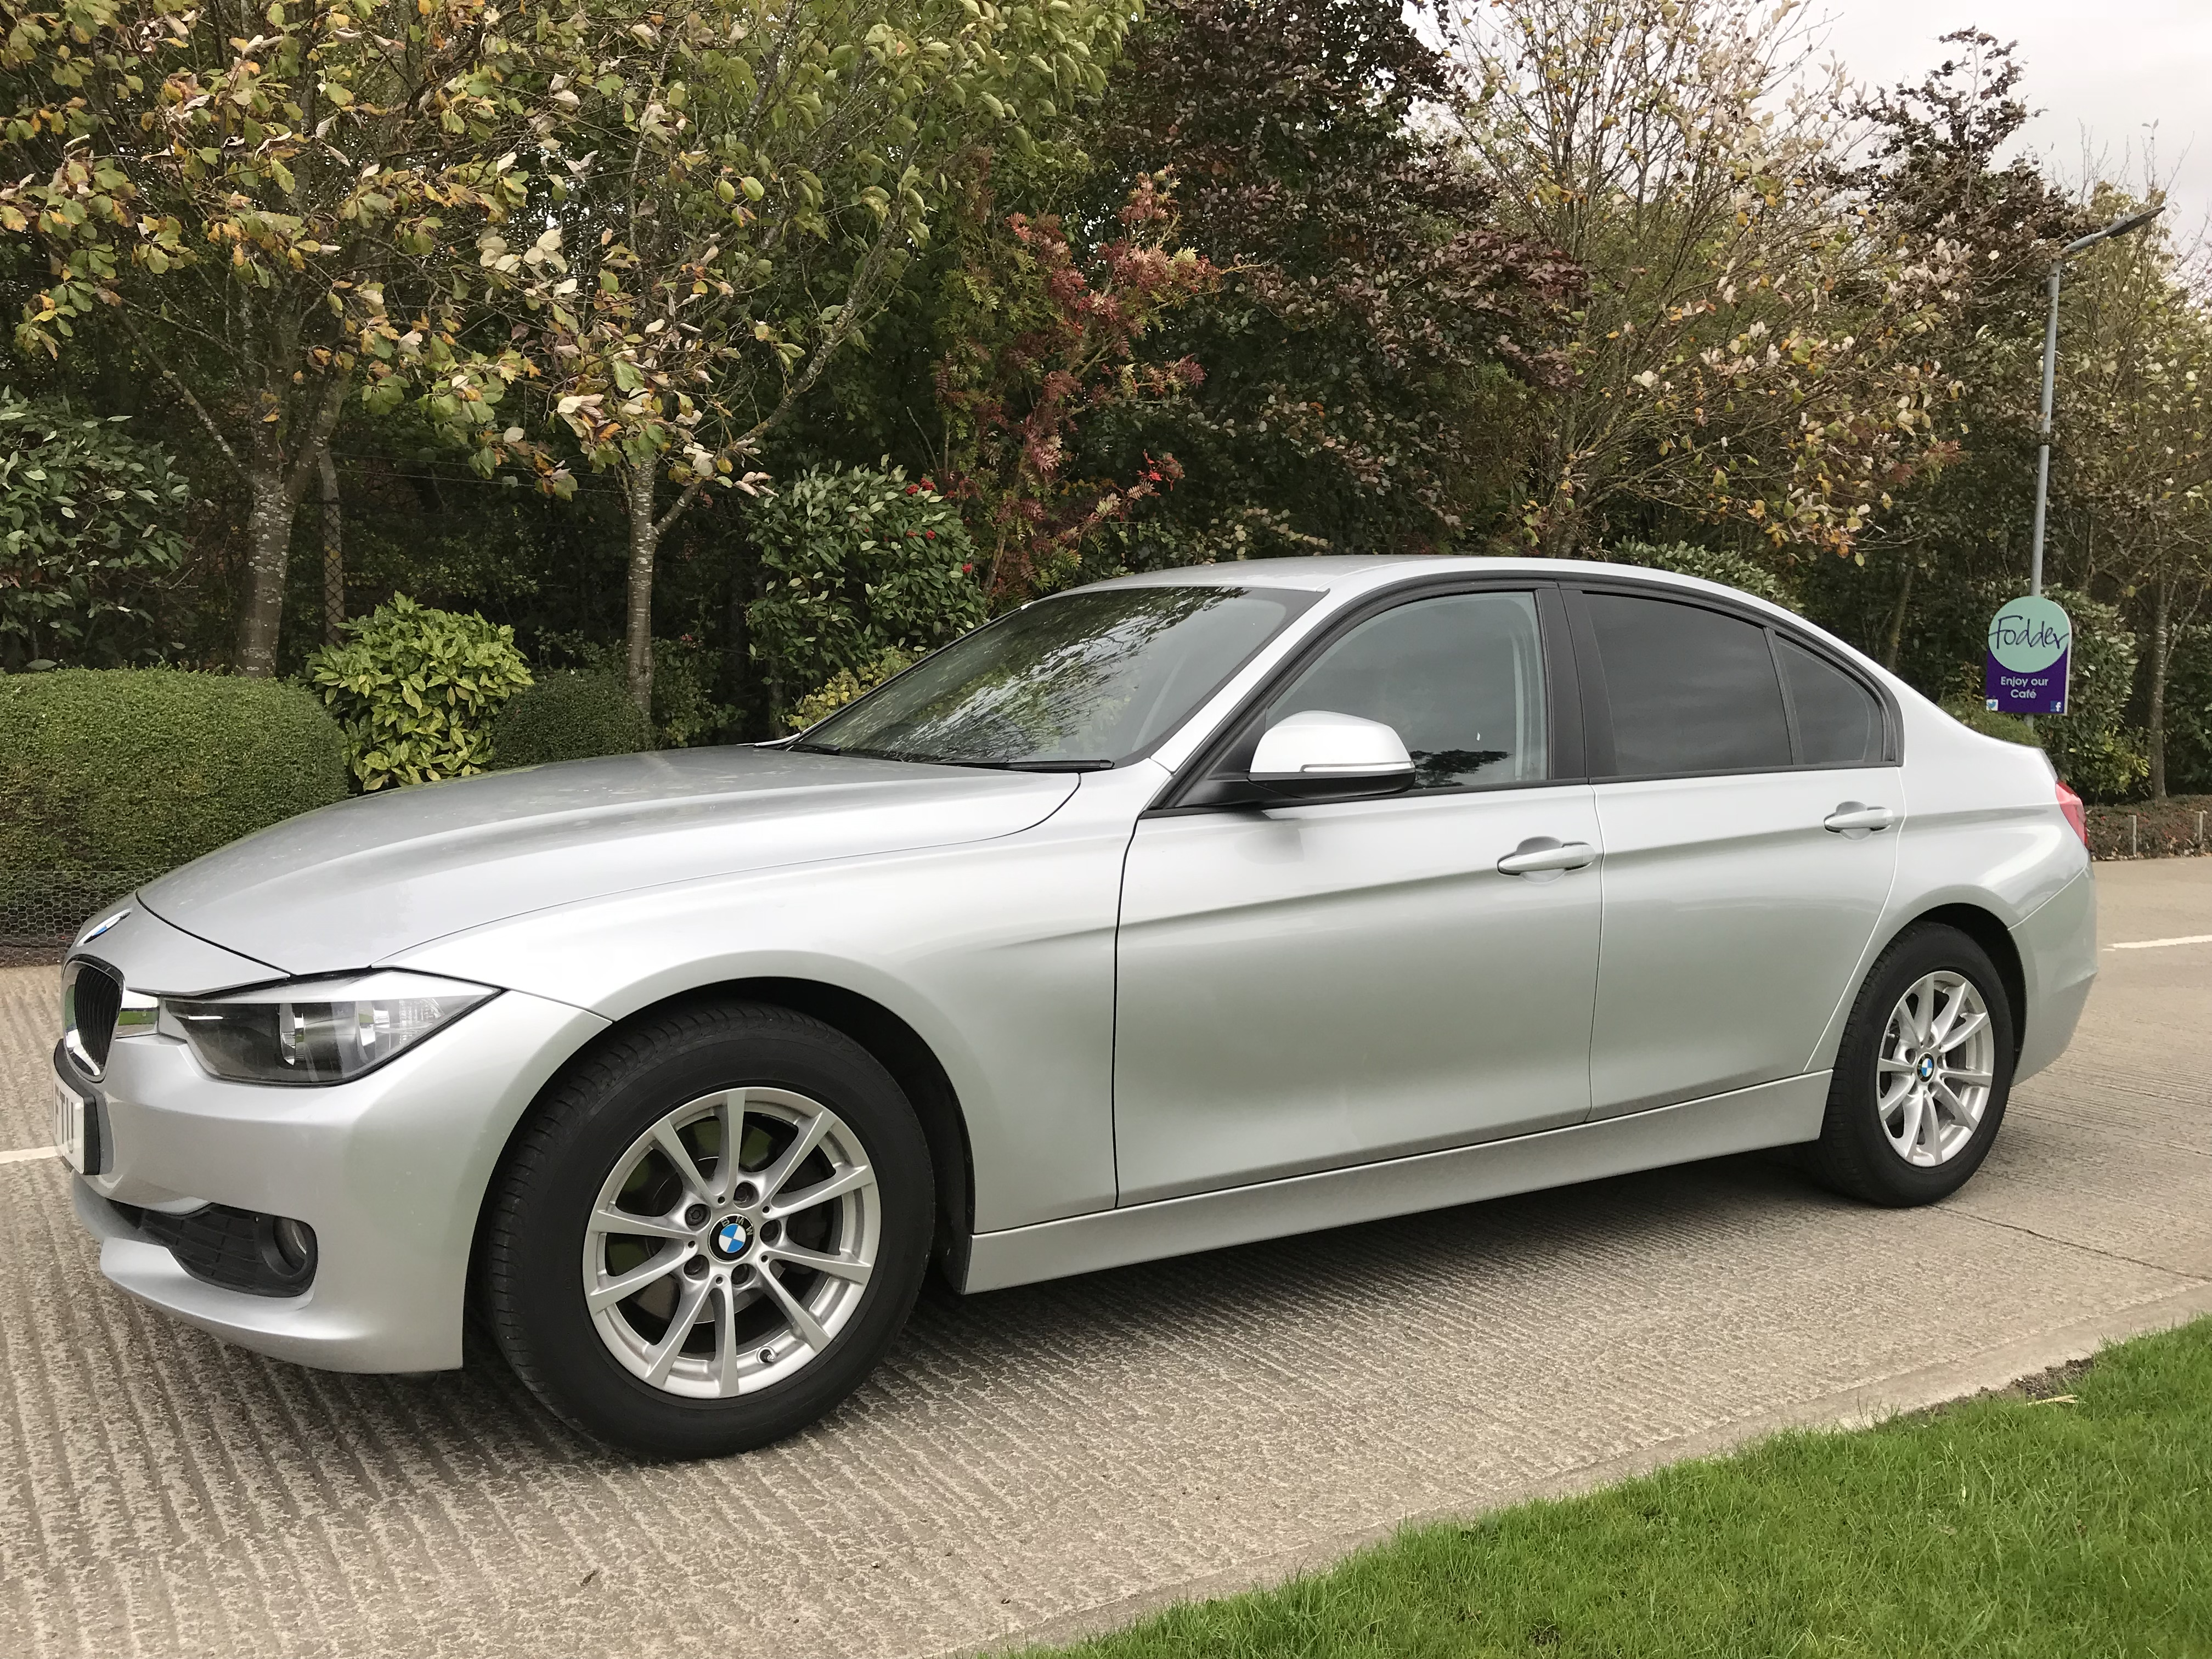 BMW 320D EFFICIENT DYNAMICS BUSINESS 2015/64 sold by S & C Car Sales Harrogate